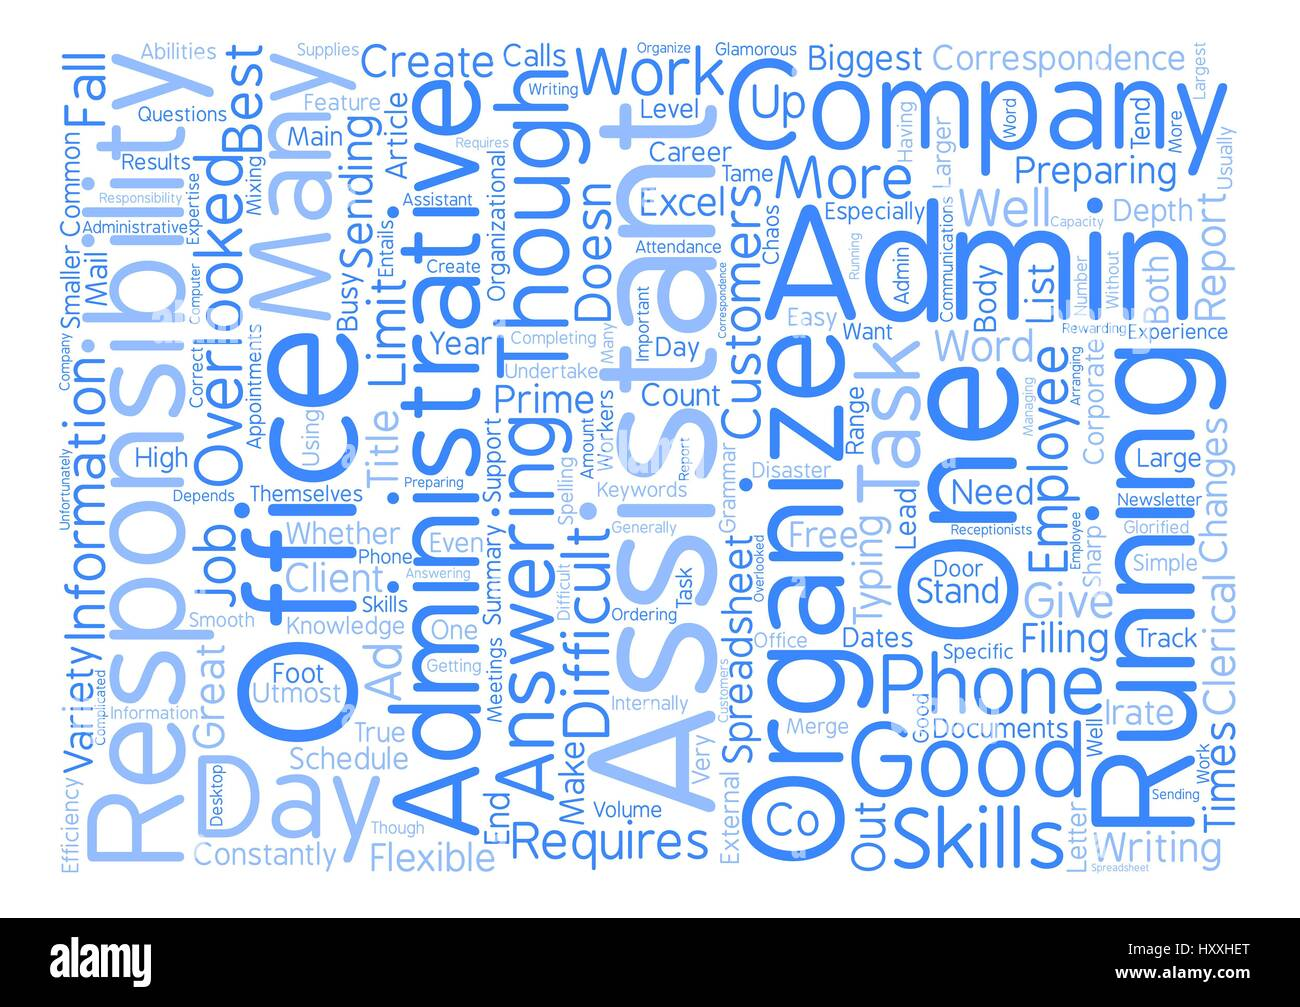 Administrative Assistant The Responsibilities Of An Administrative Assistant Text